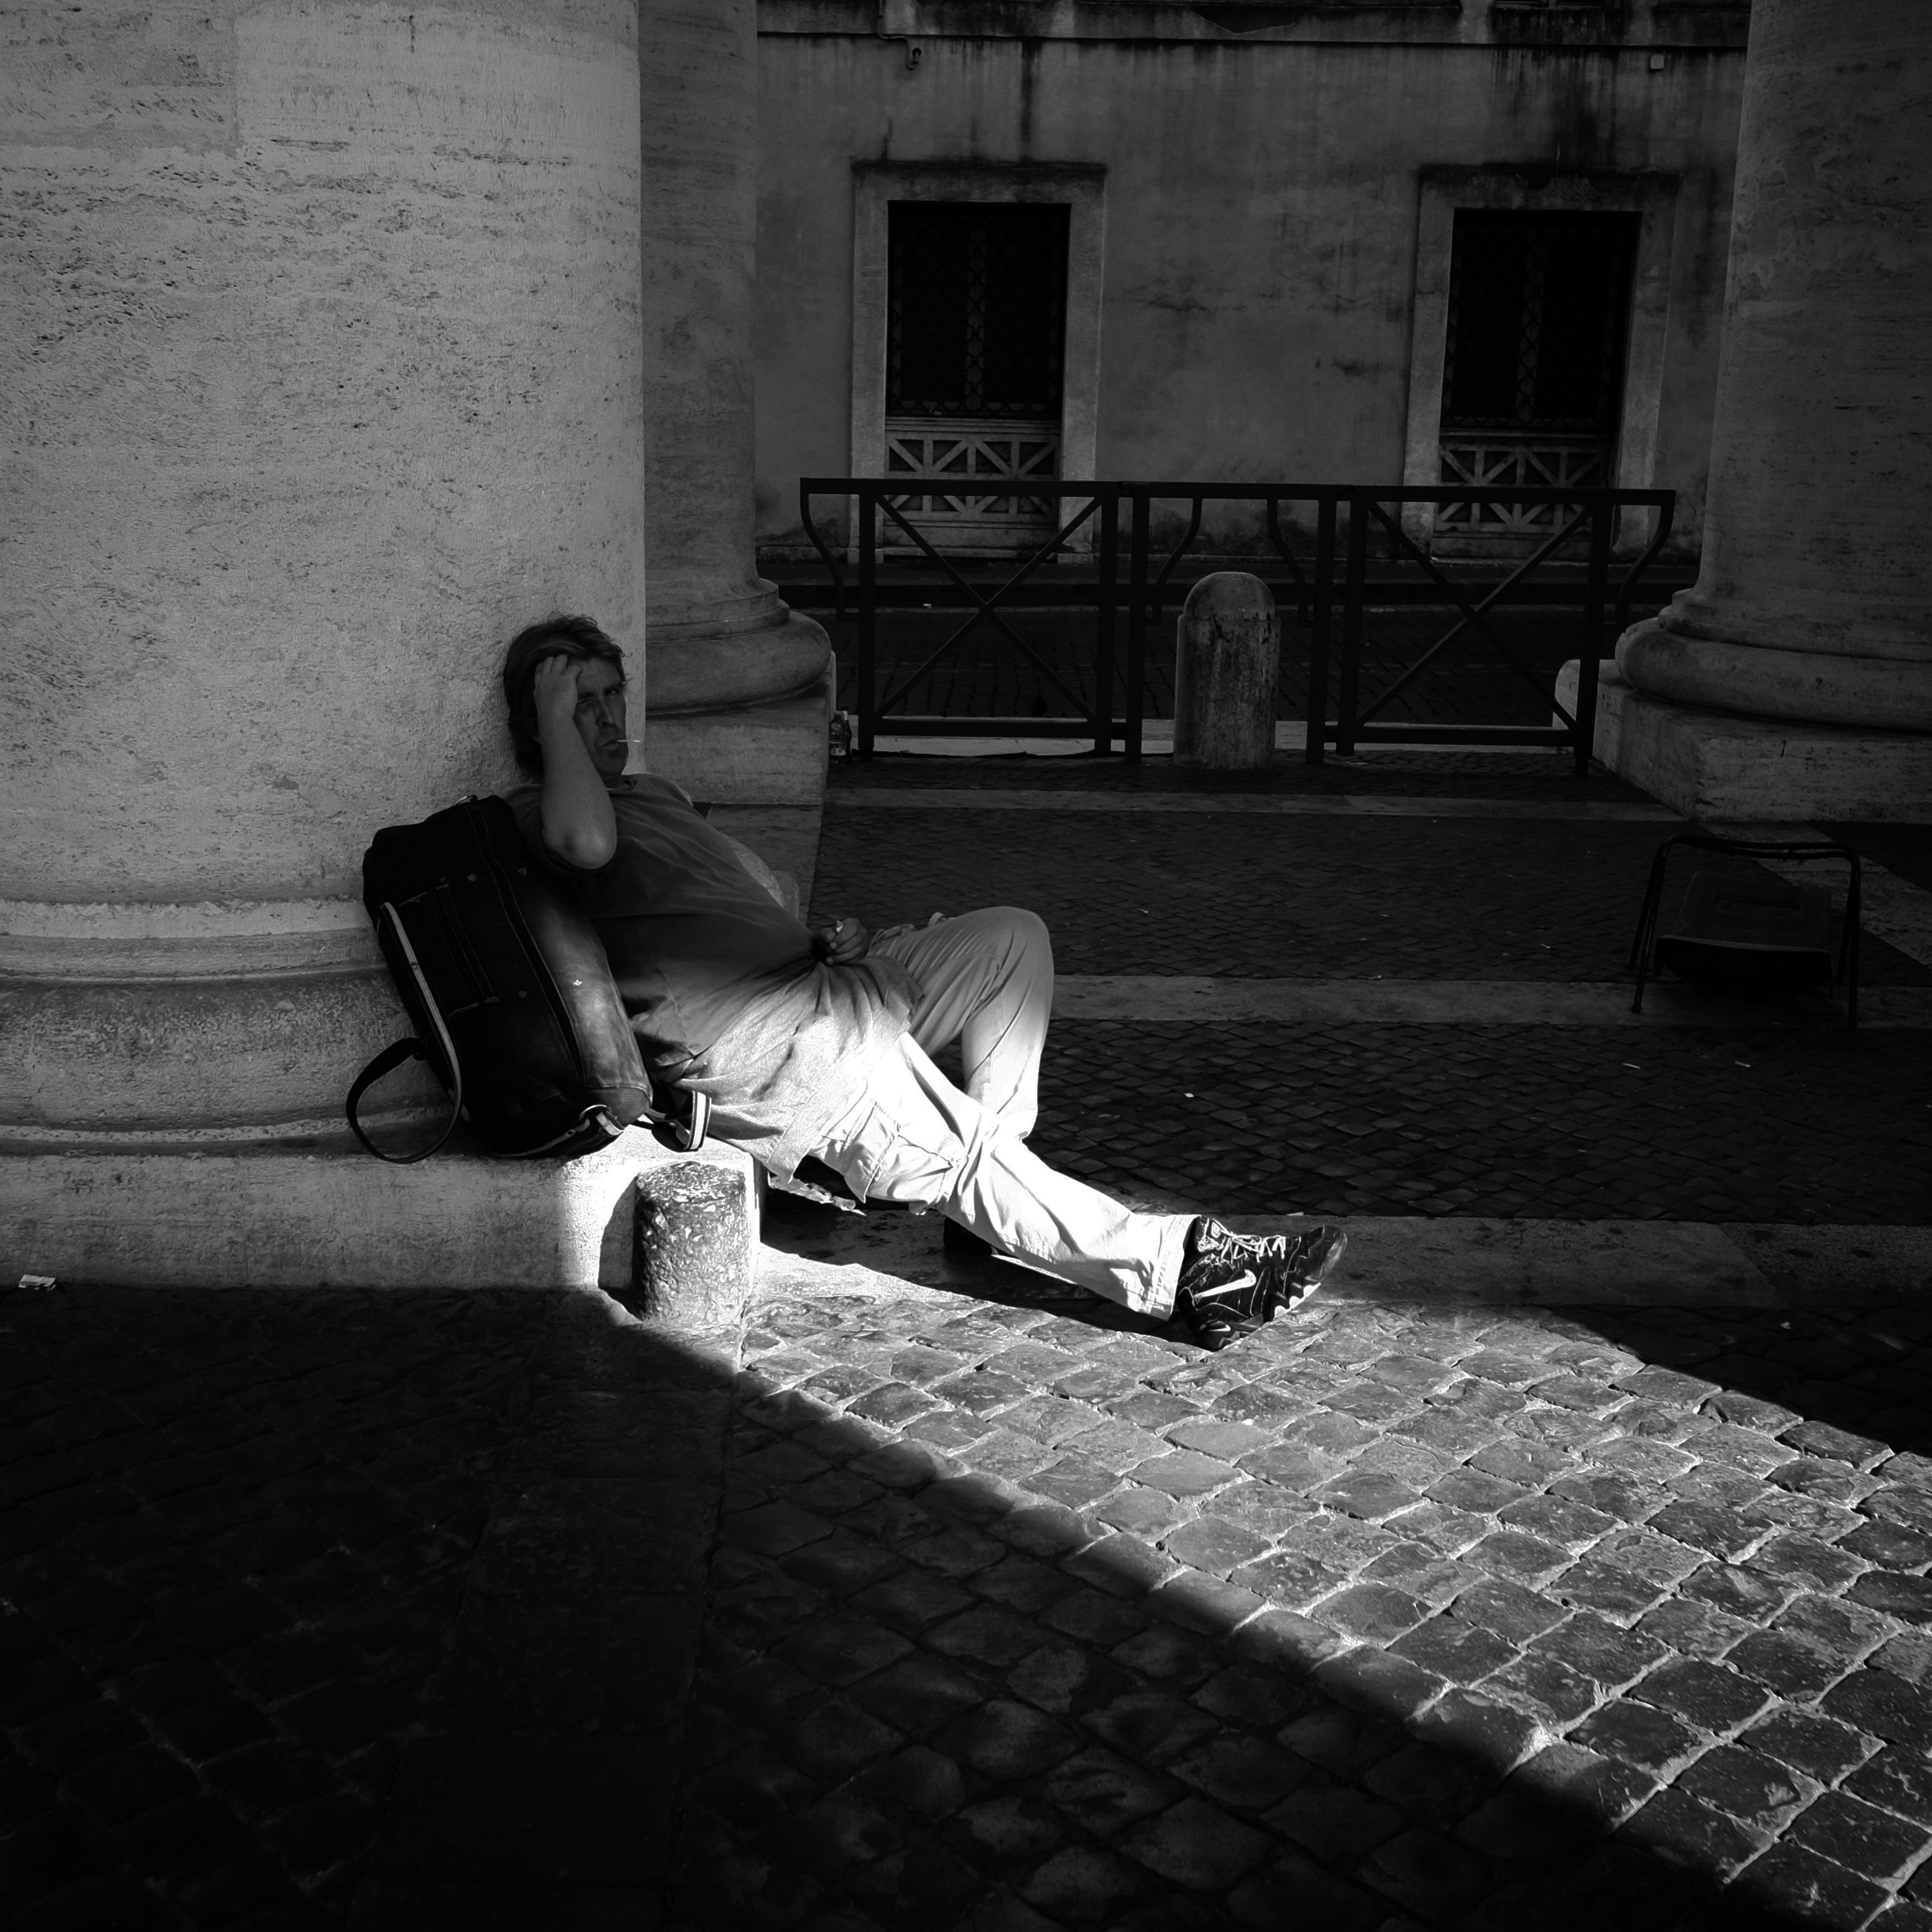 full length, building exterior, architecture, built structure, lifestyles, side view, street, leisure activity, sitting, casual clothing, sidewalk, cobblestone, childhood, shadow, outdoors, day, chair, sunlight